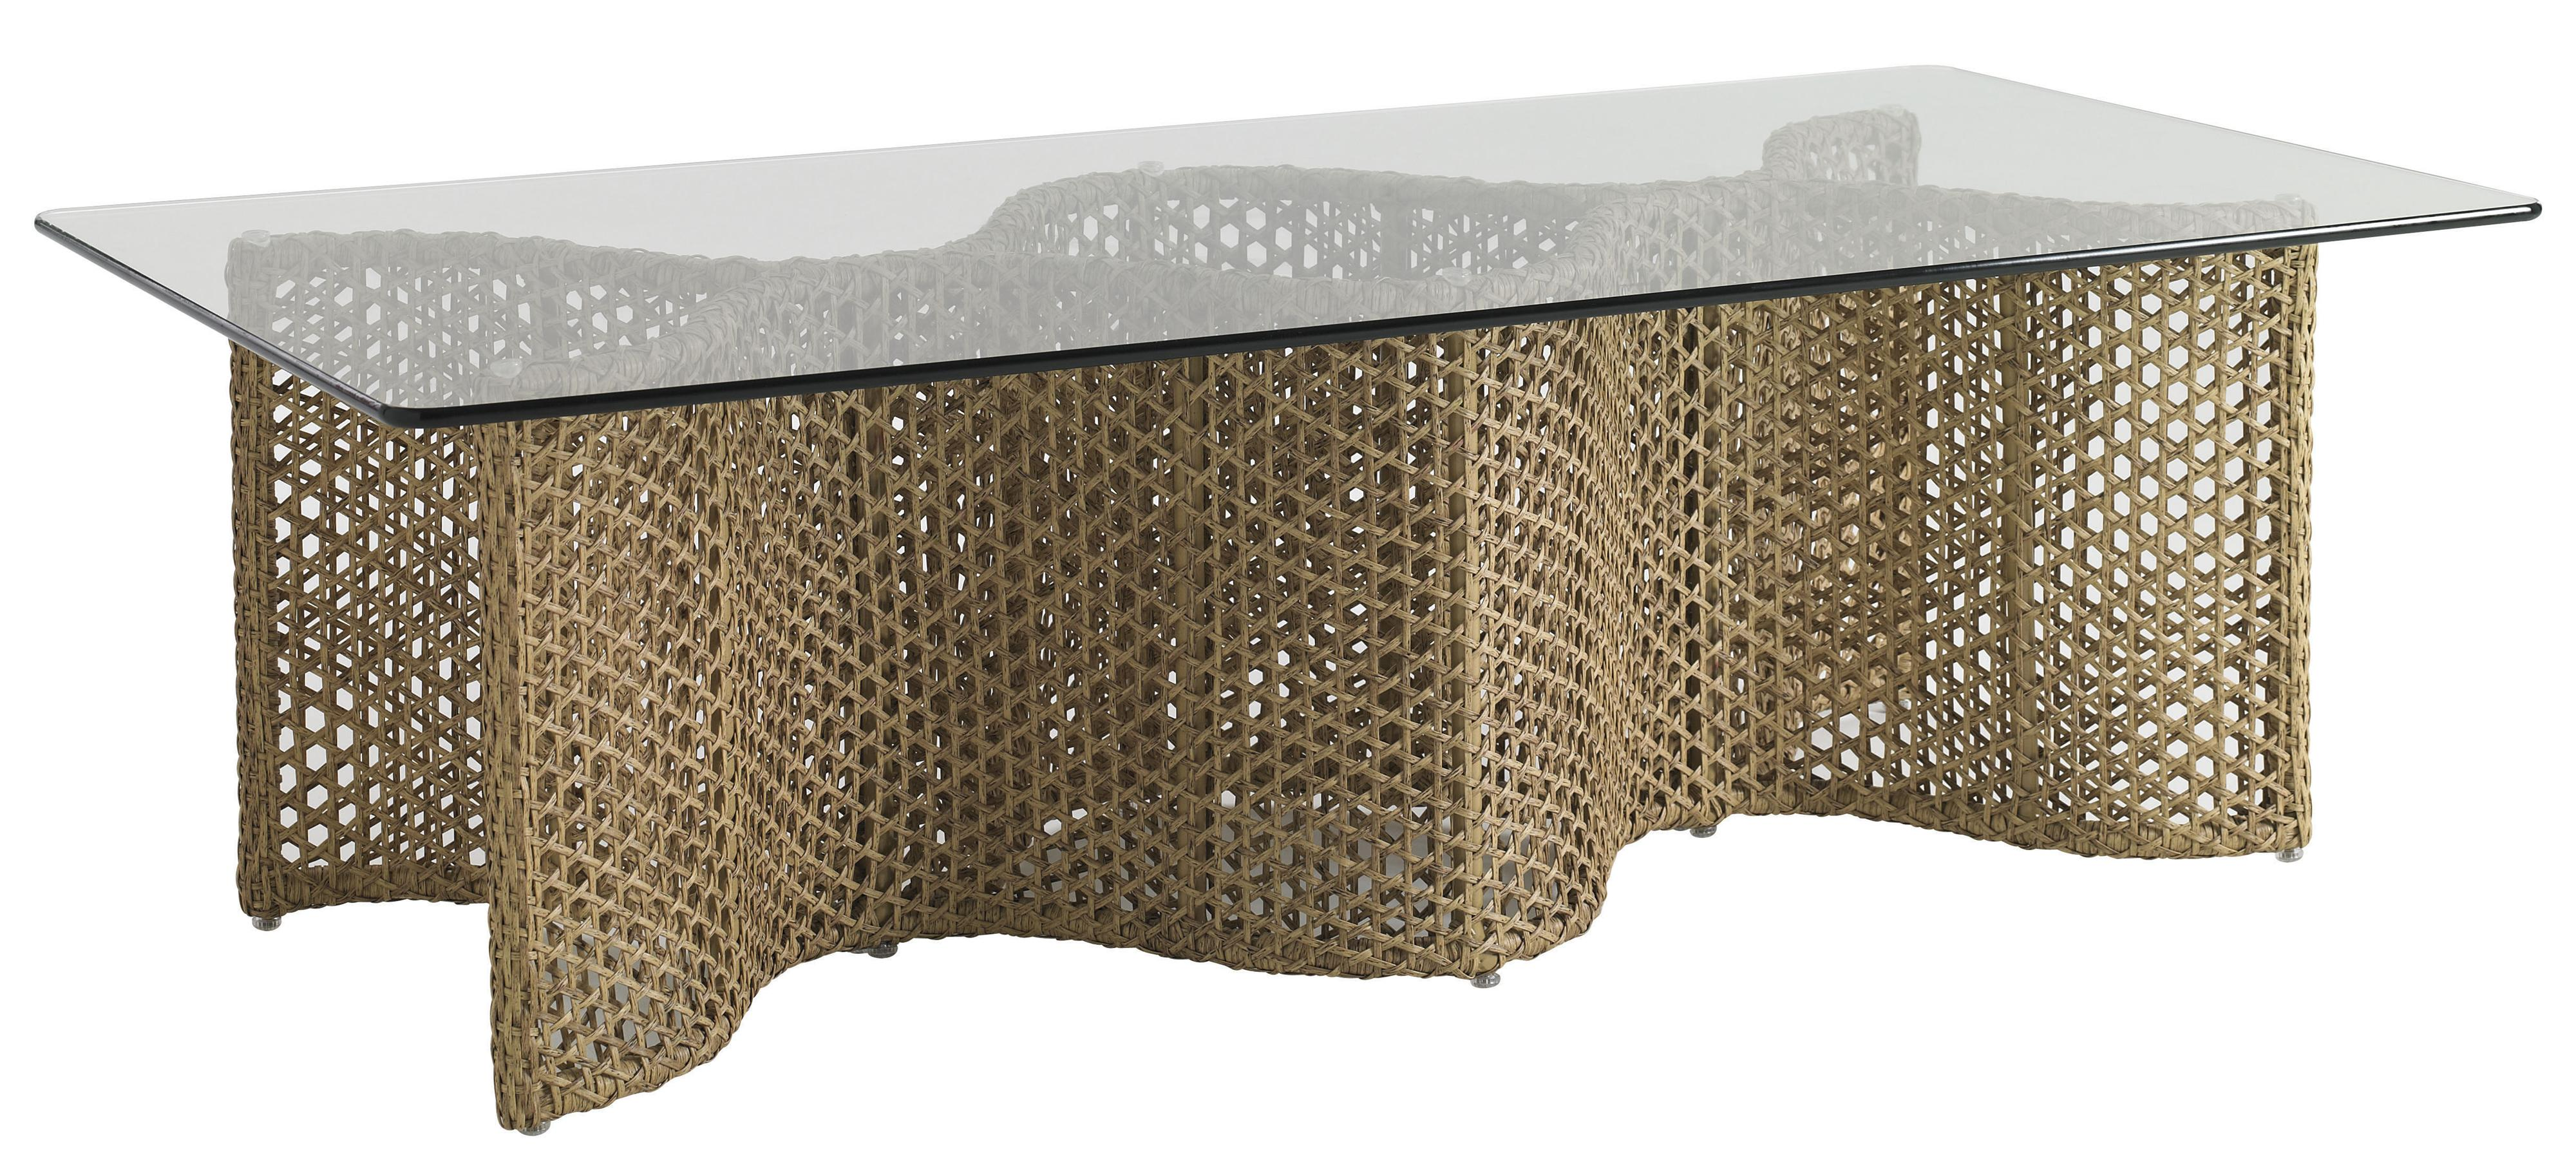 Aviano Outdoor Cocktail Table by Tommy Bahama Outdoor Living at Baer's Furniture